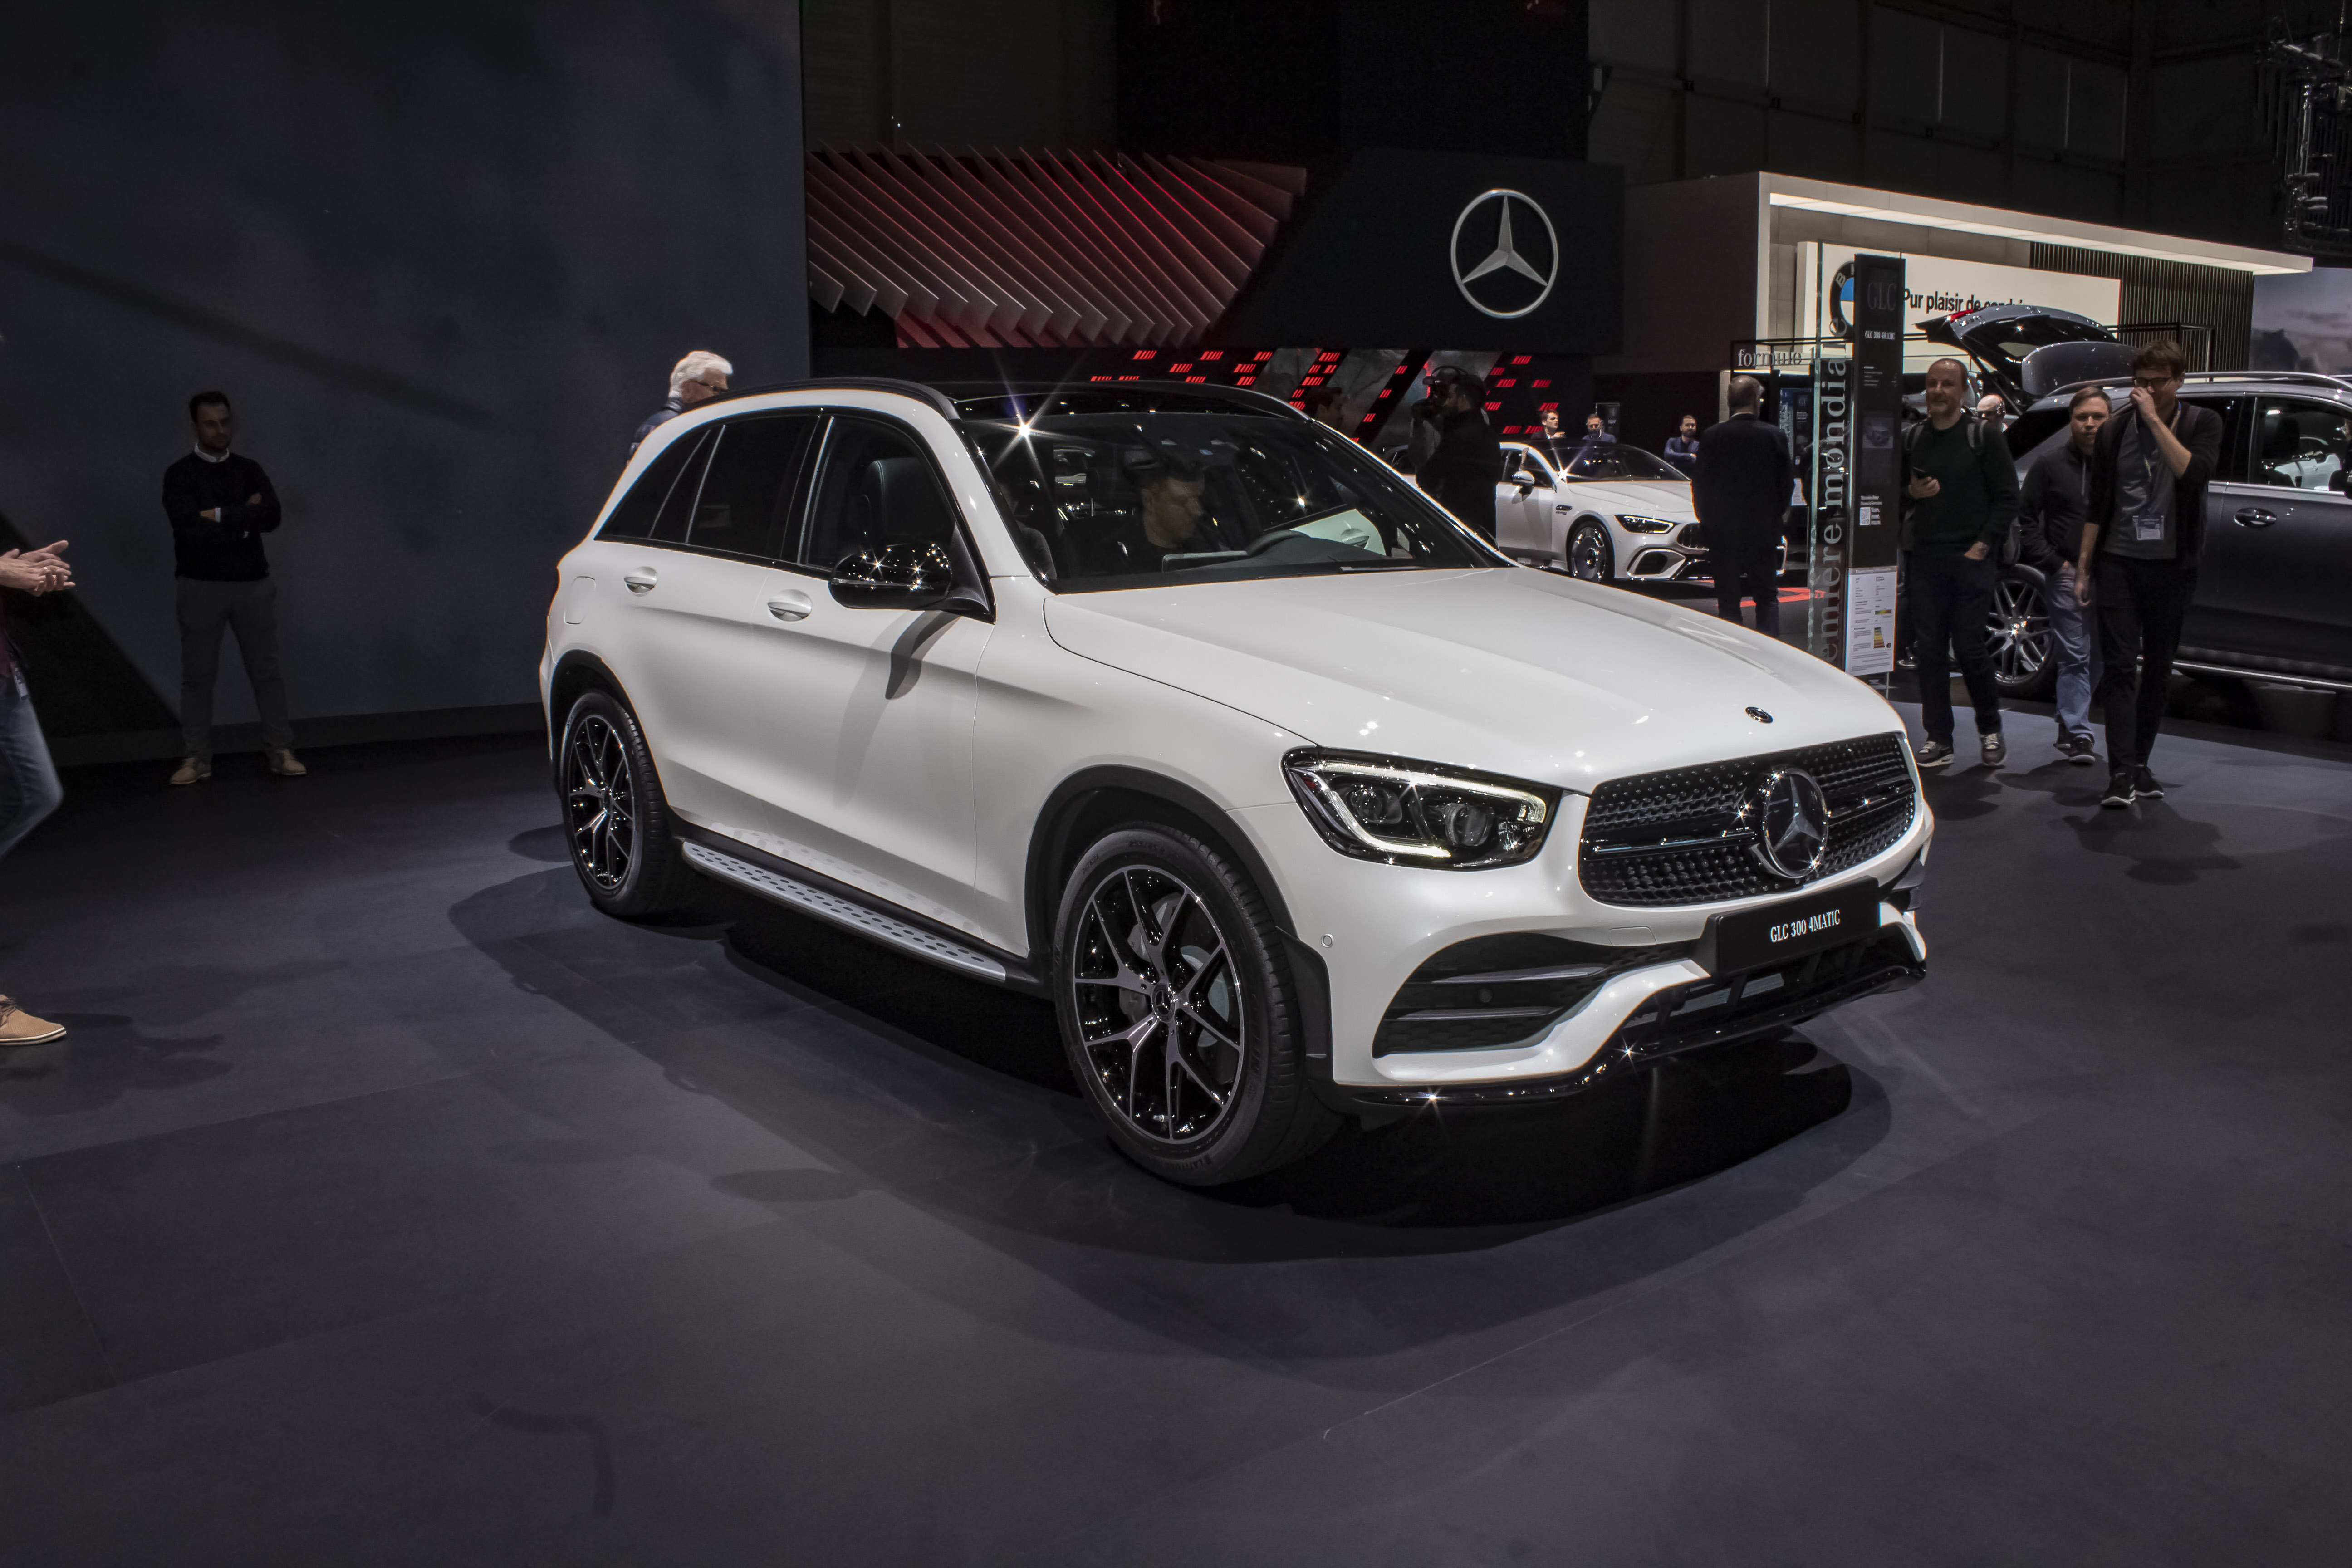 Mercedes GLC-Class: Latest News, Reviews, Specifications